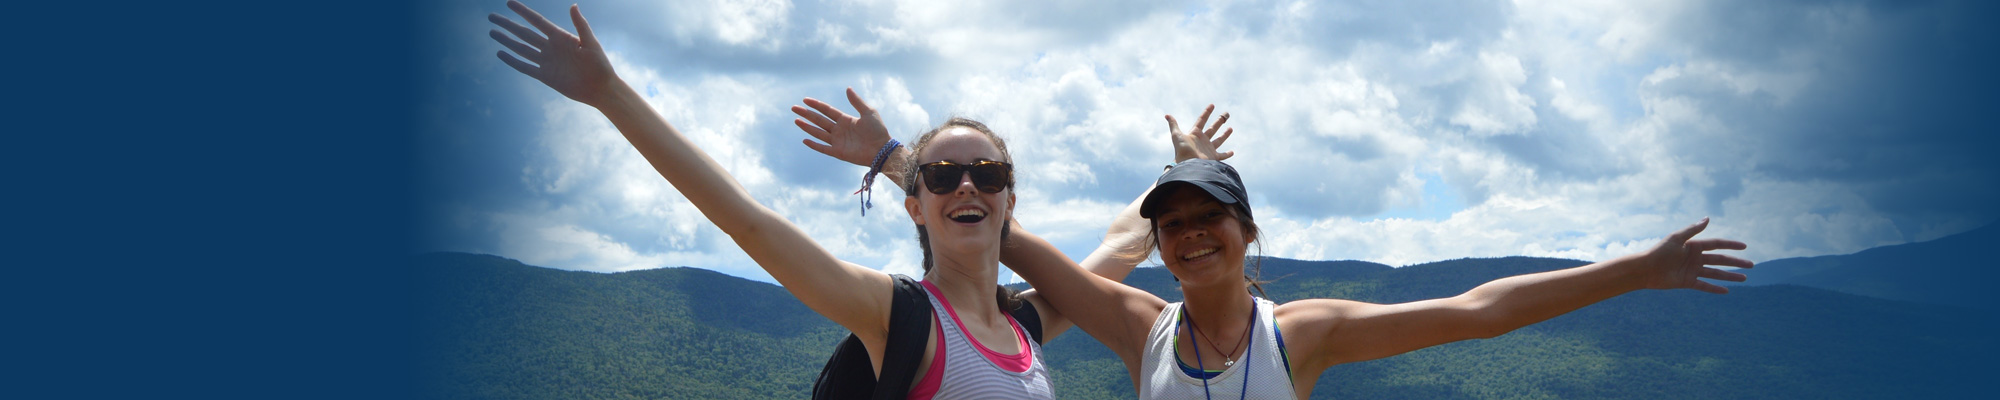 Hiking at Camp Jeanne d'Arc Summer Camp for Girls in the Adirondacks